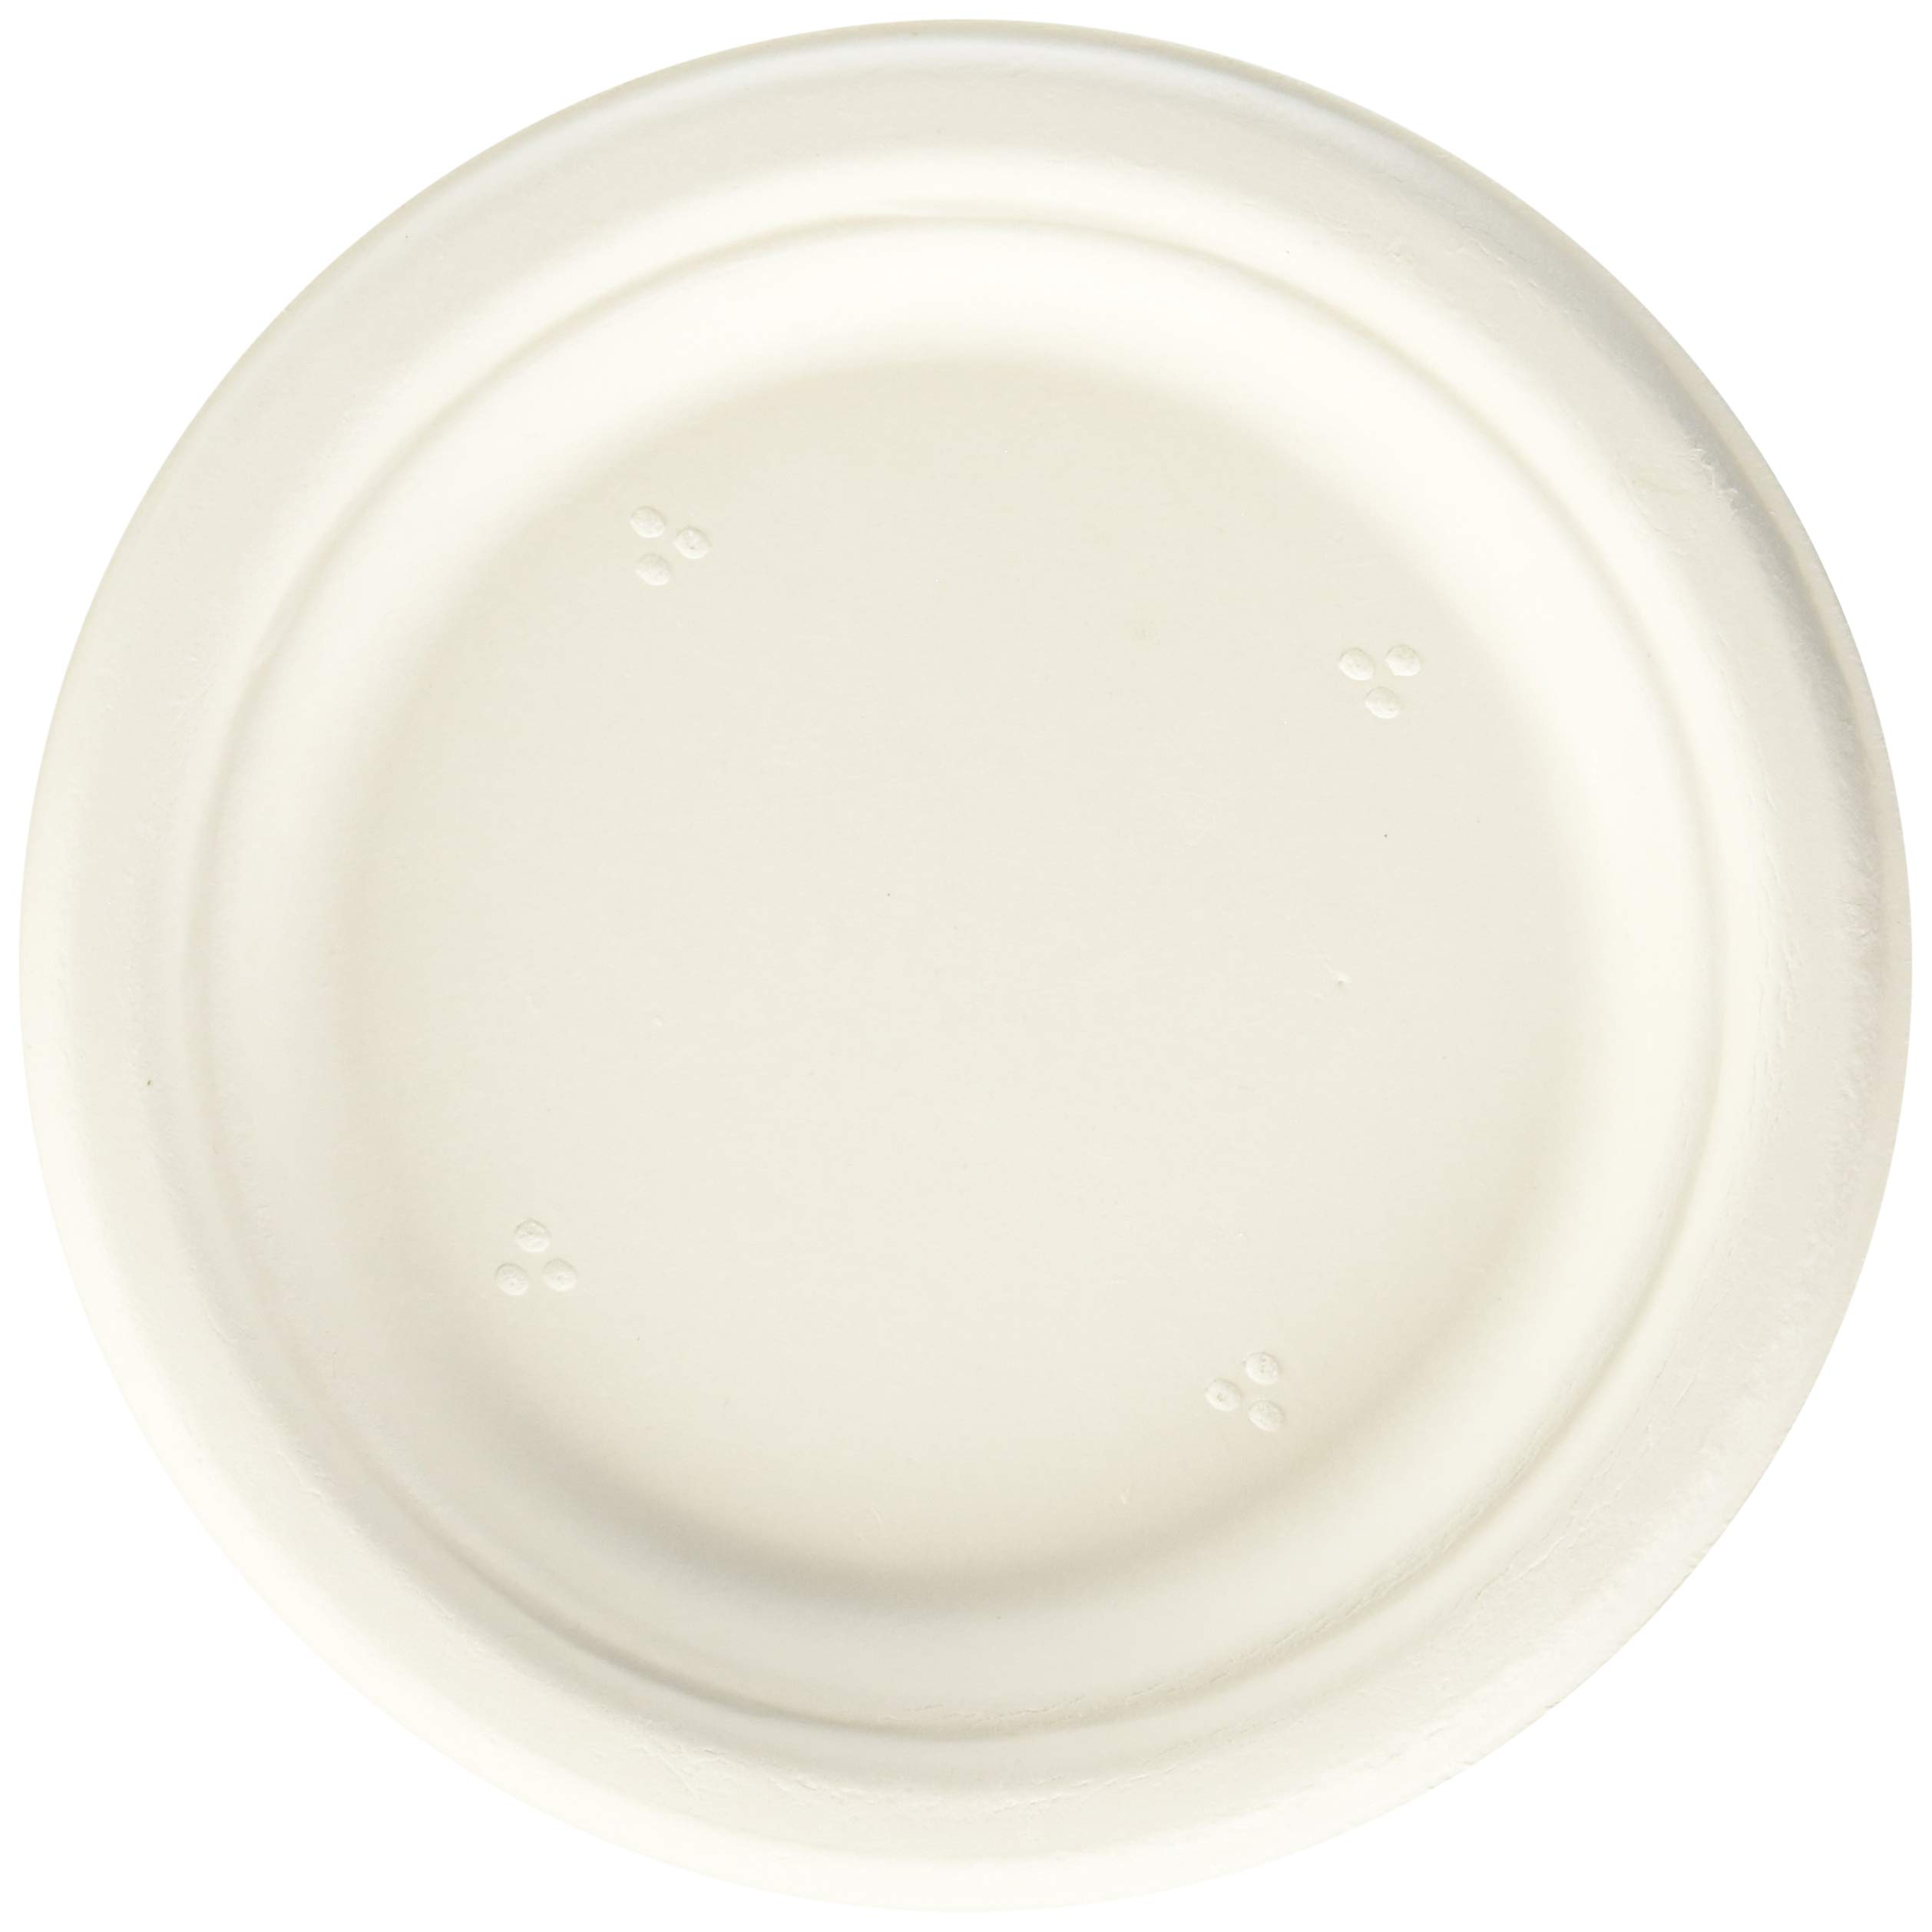 Amazon Com Hefty Pctd7730000cbt Super Strong Paper Plates Pack Of 30 Industrial Scientific